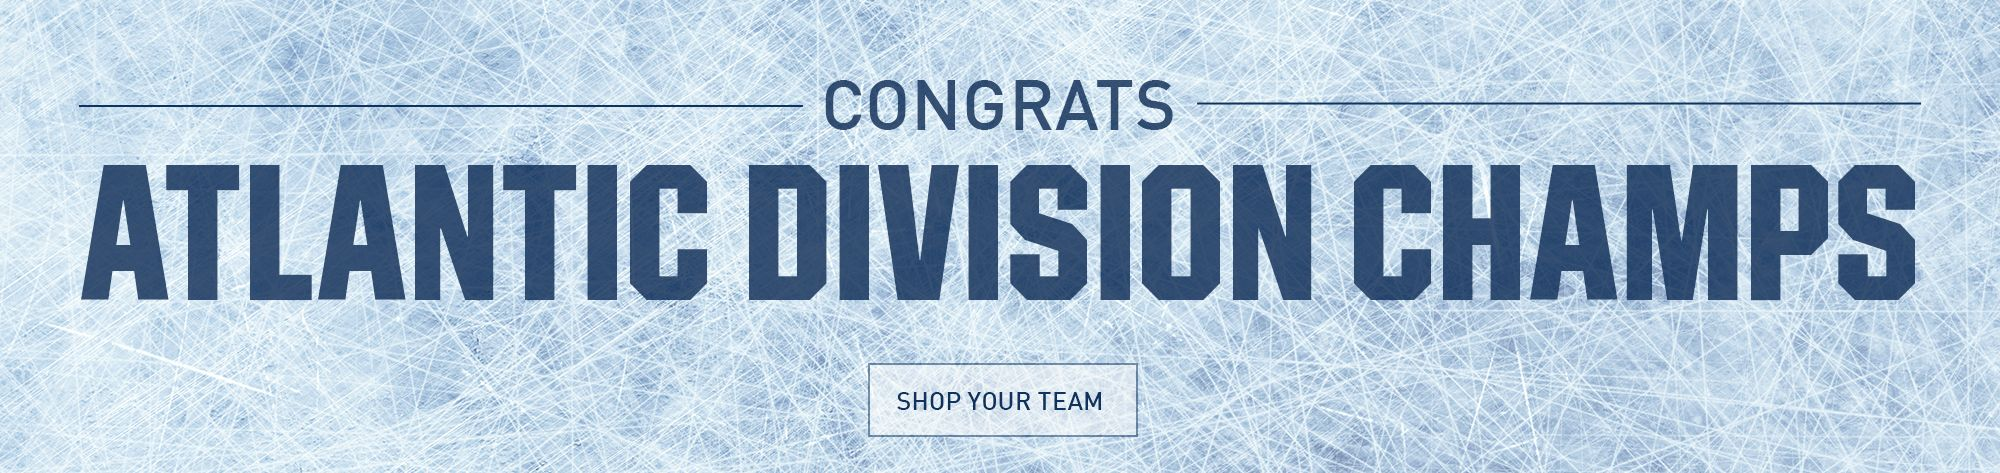 Congrats - Atlantic Division Champs - Shop Your Team